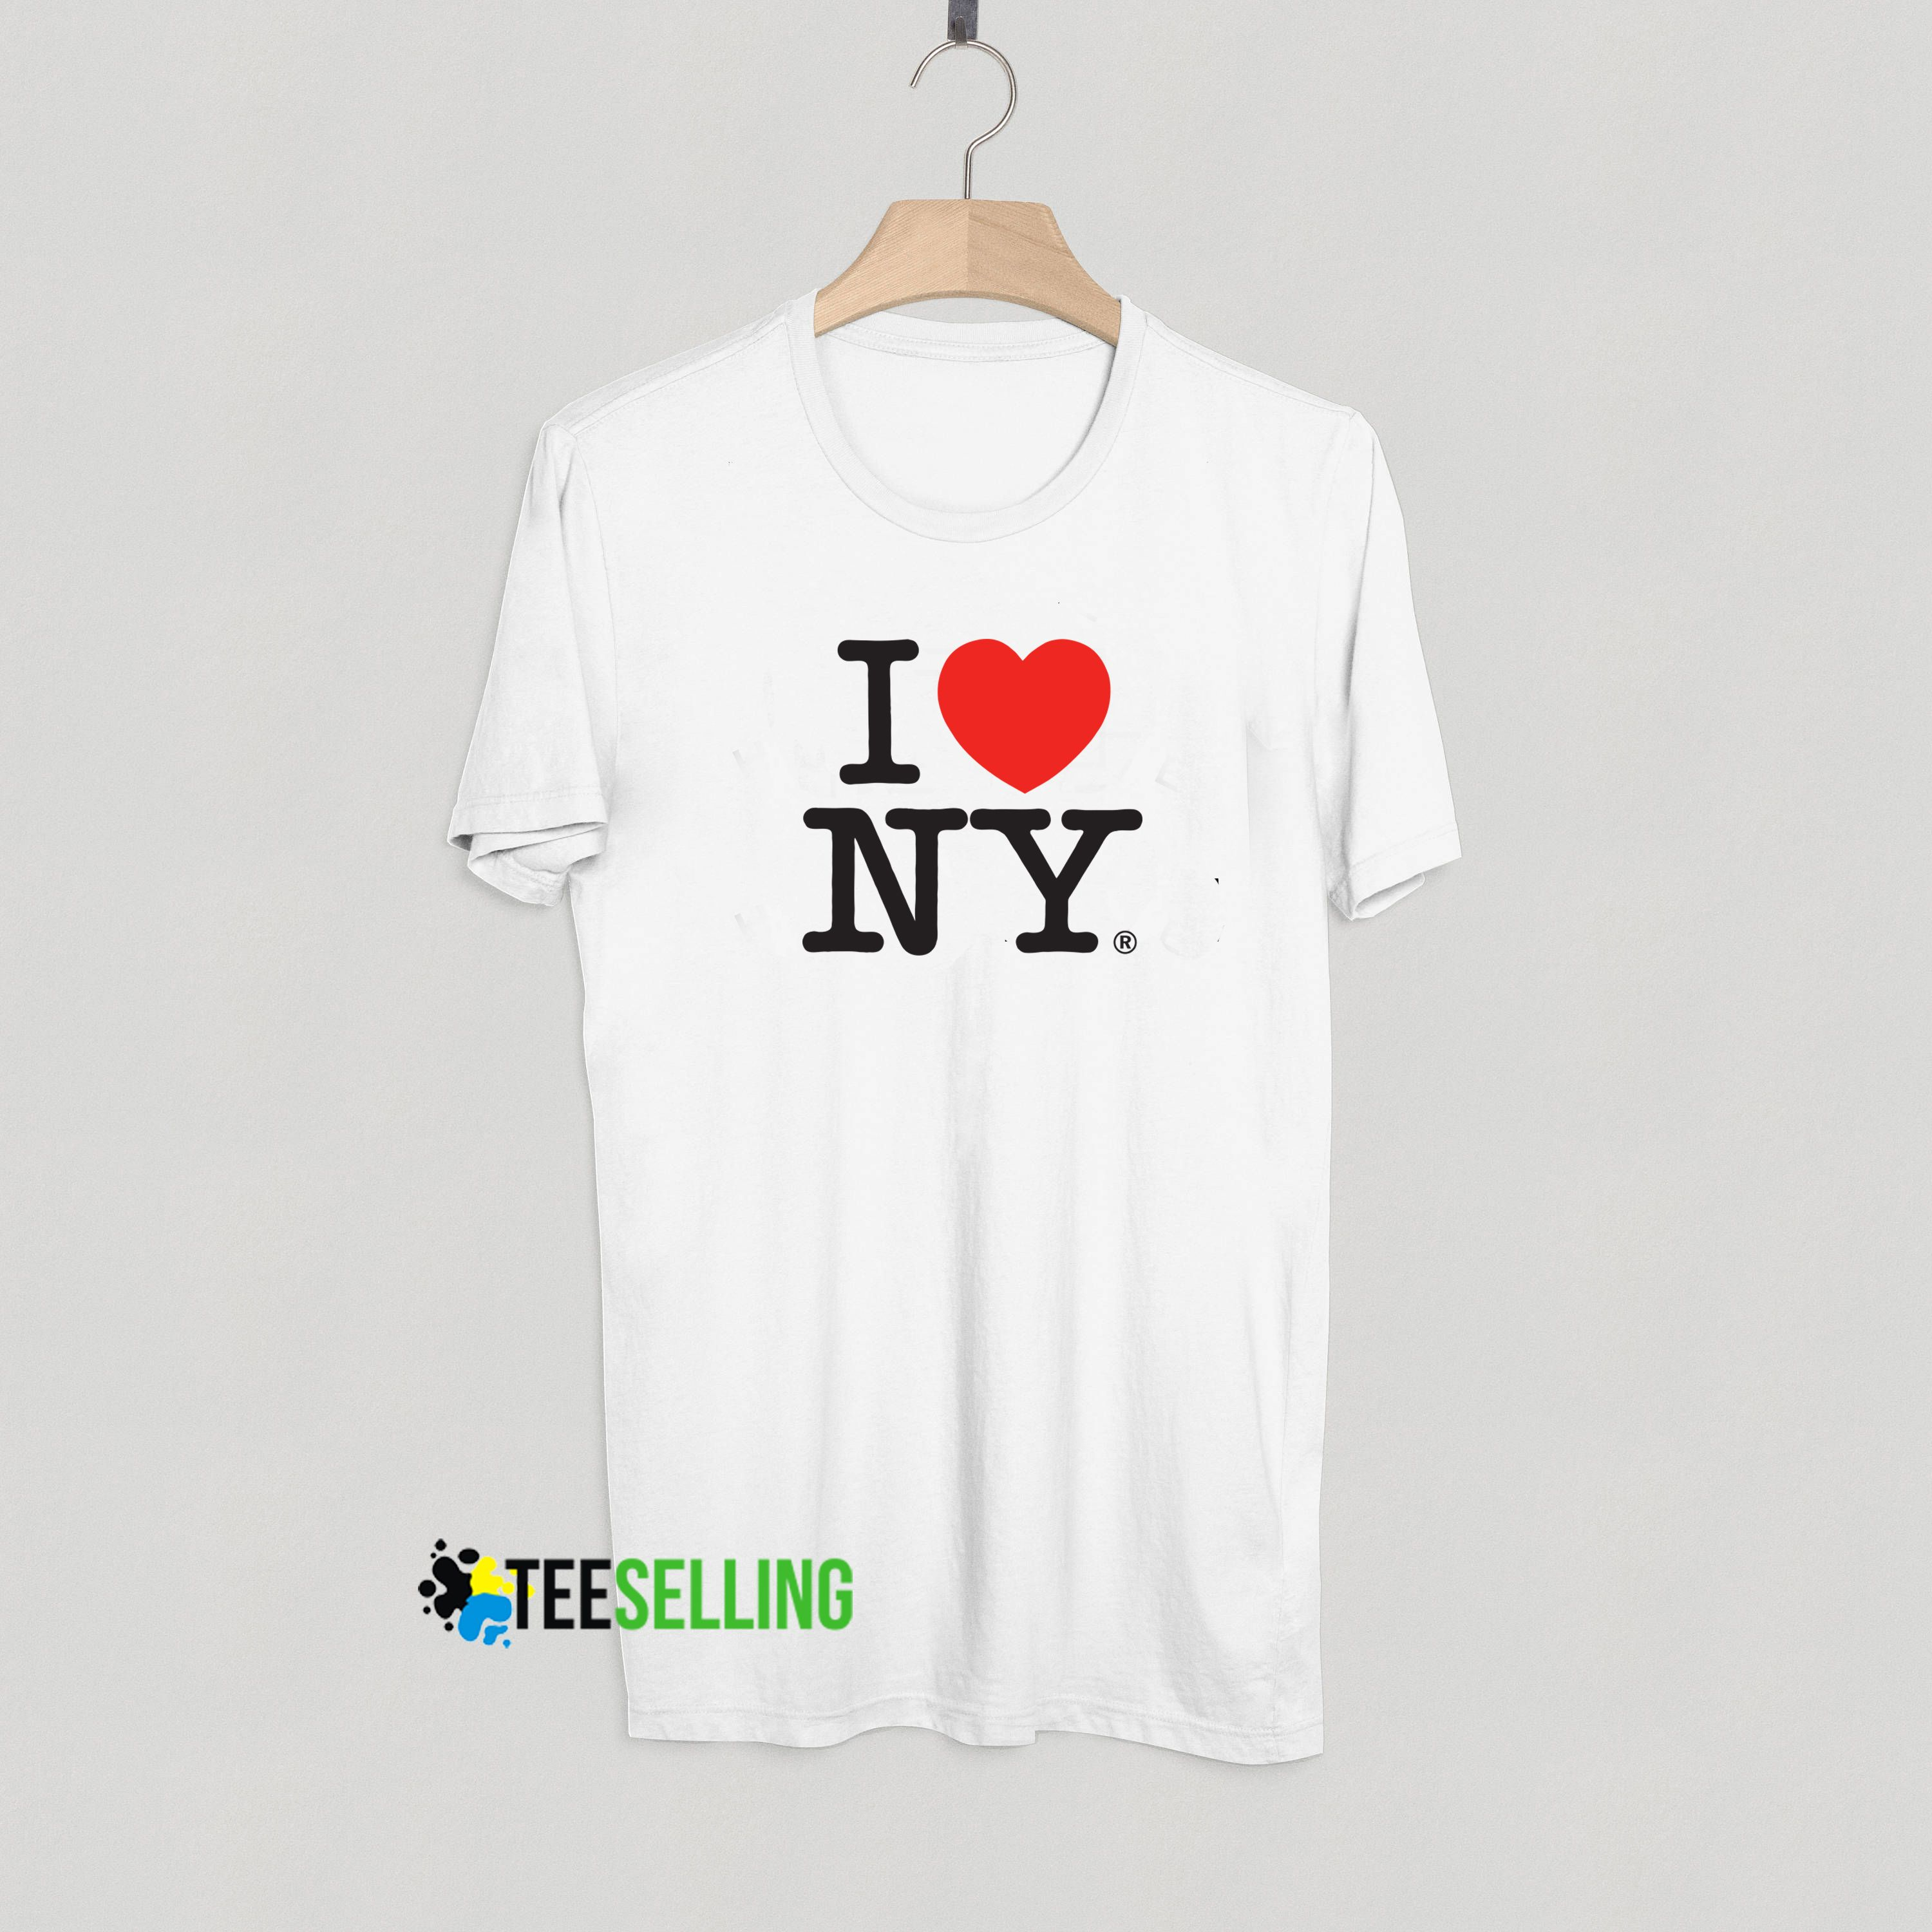 35844427dab4 I Love New York T shirt Adult Unisex Size S 3XL